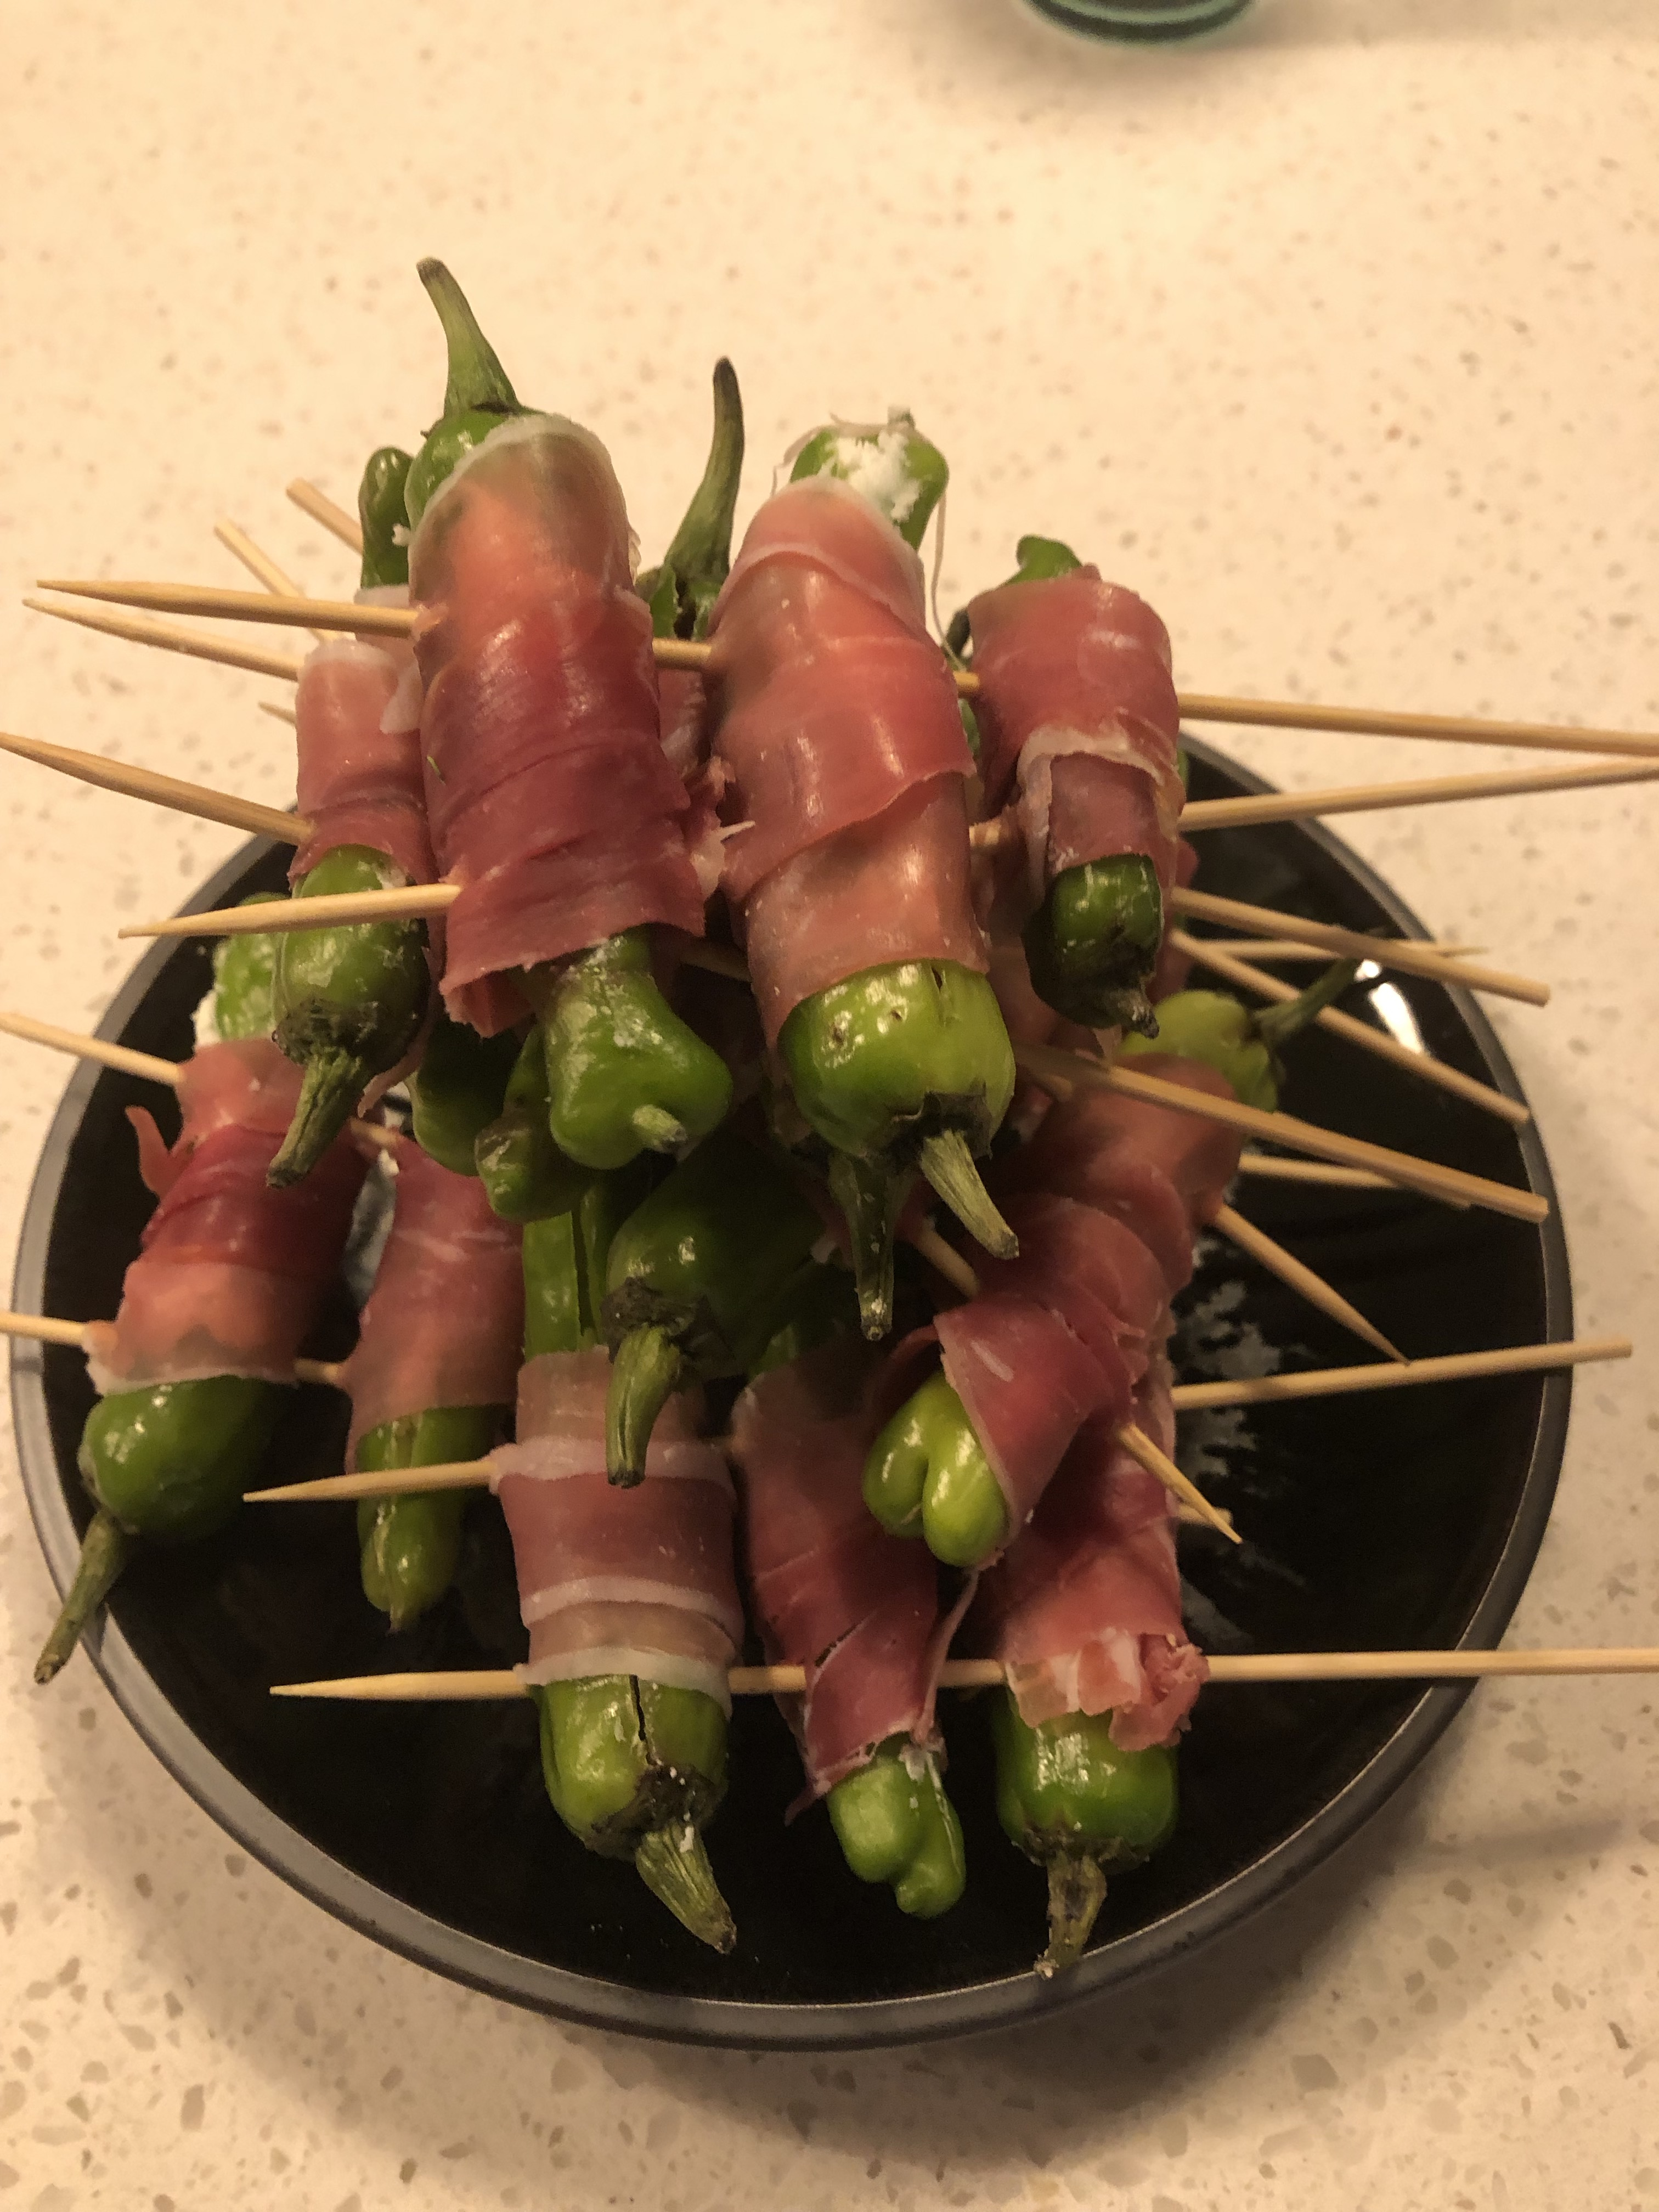 Japanese shishito peppers prepped for cooking